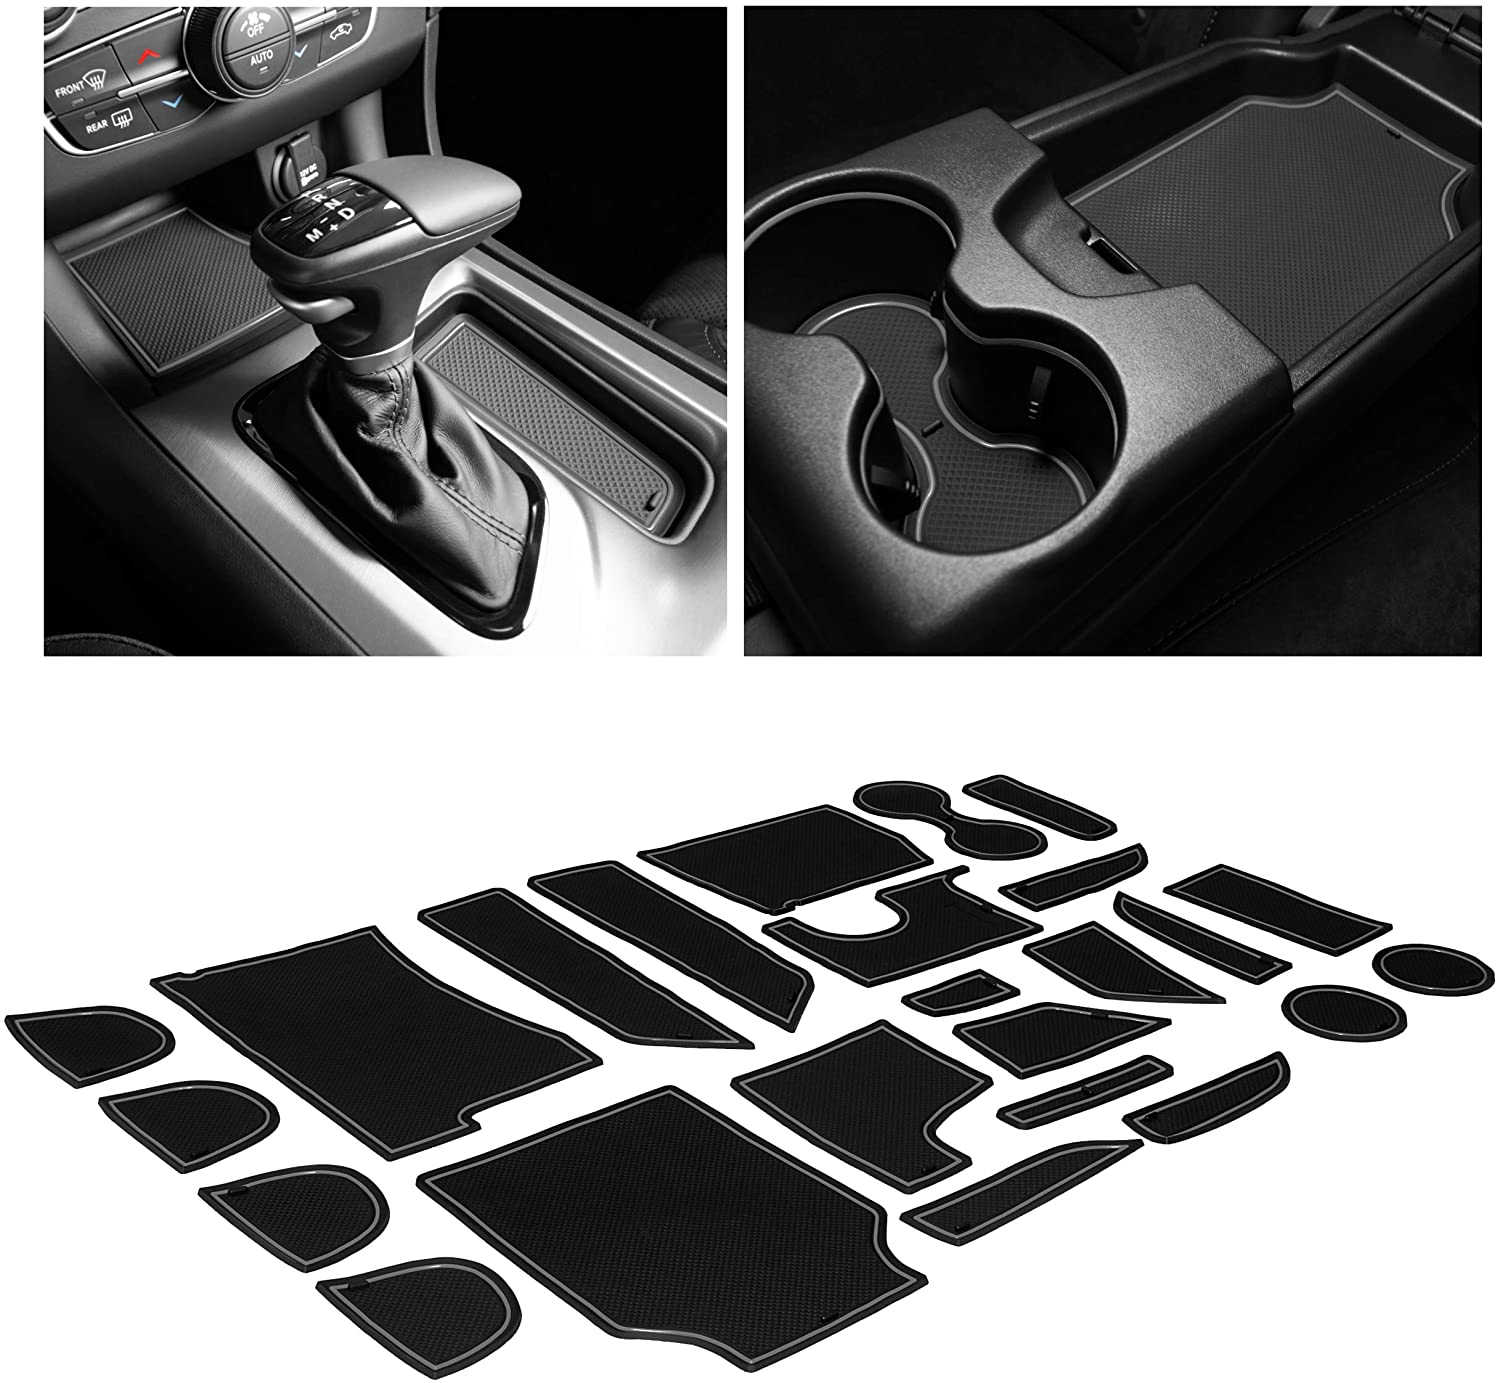 Gray Trim Door Pocket Liners 29-pc Set CupHolderHero fits Dodge Charger and fits Chrysler 300 Accessories Interior Non-Slip Anti Dust Cup Holder Inserts 2011-2014 Center Console Liner Mats